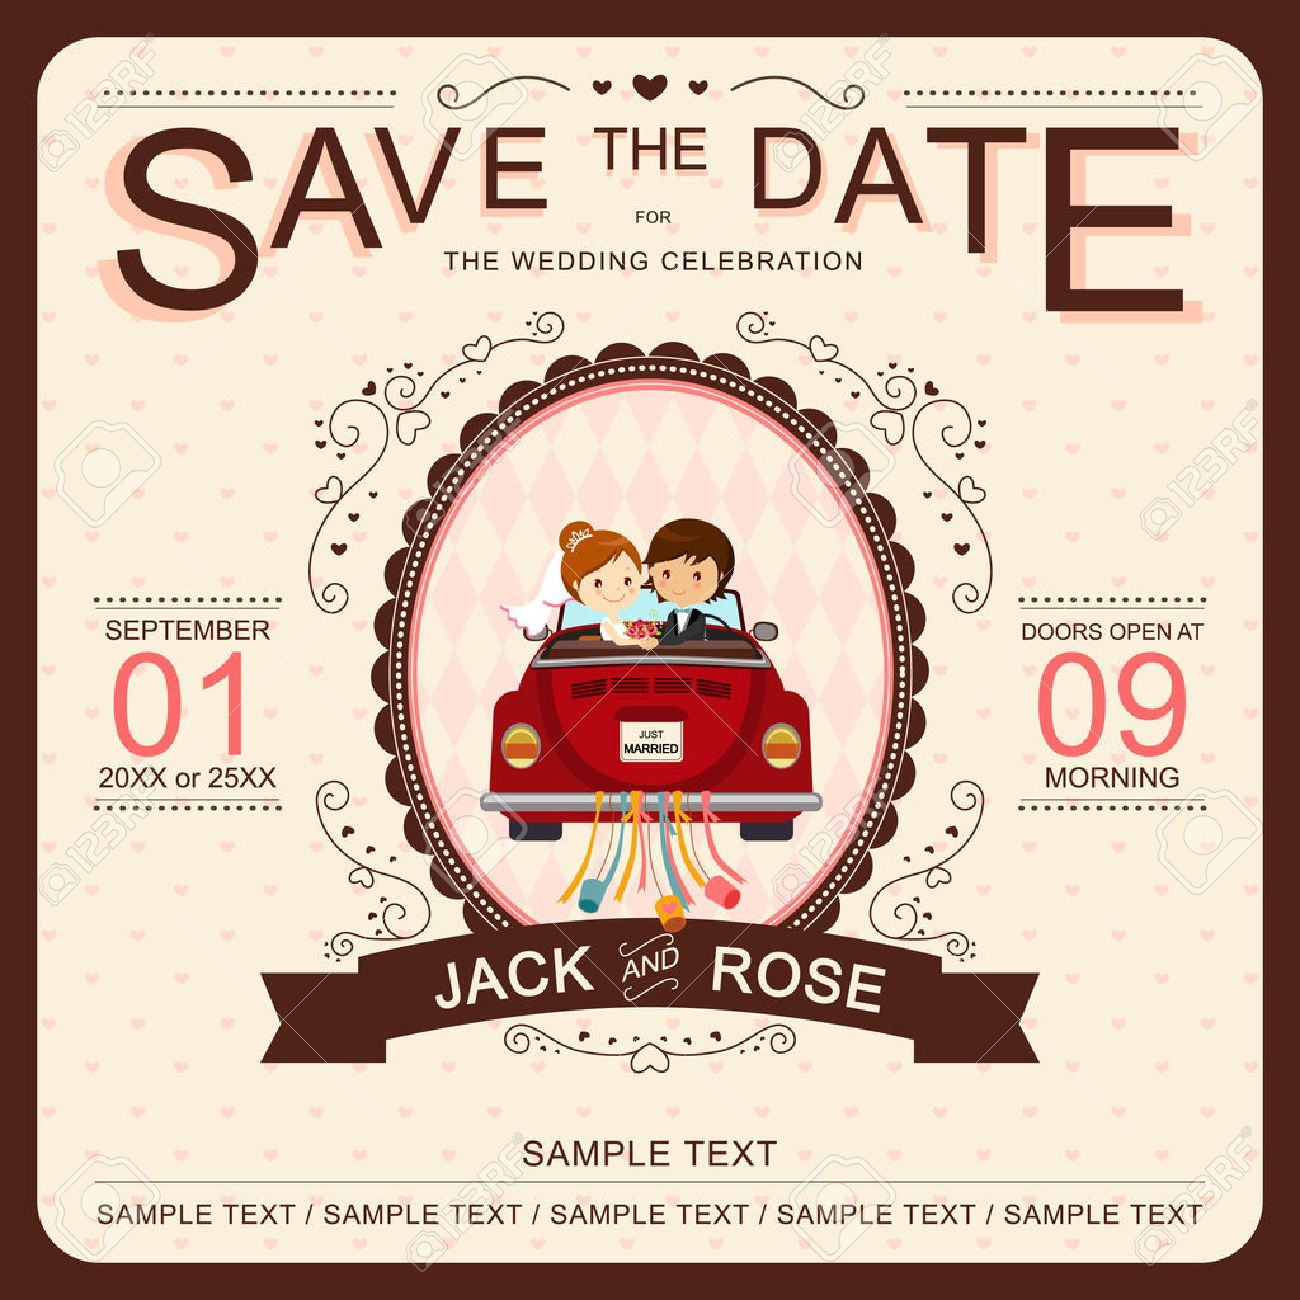 Cute Bride And Groom In Red Car Wedding Invitation Template Royalty ...